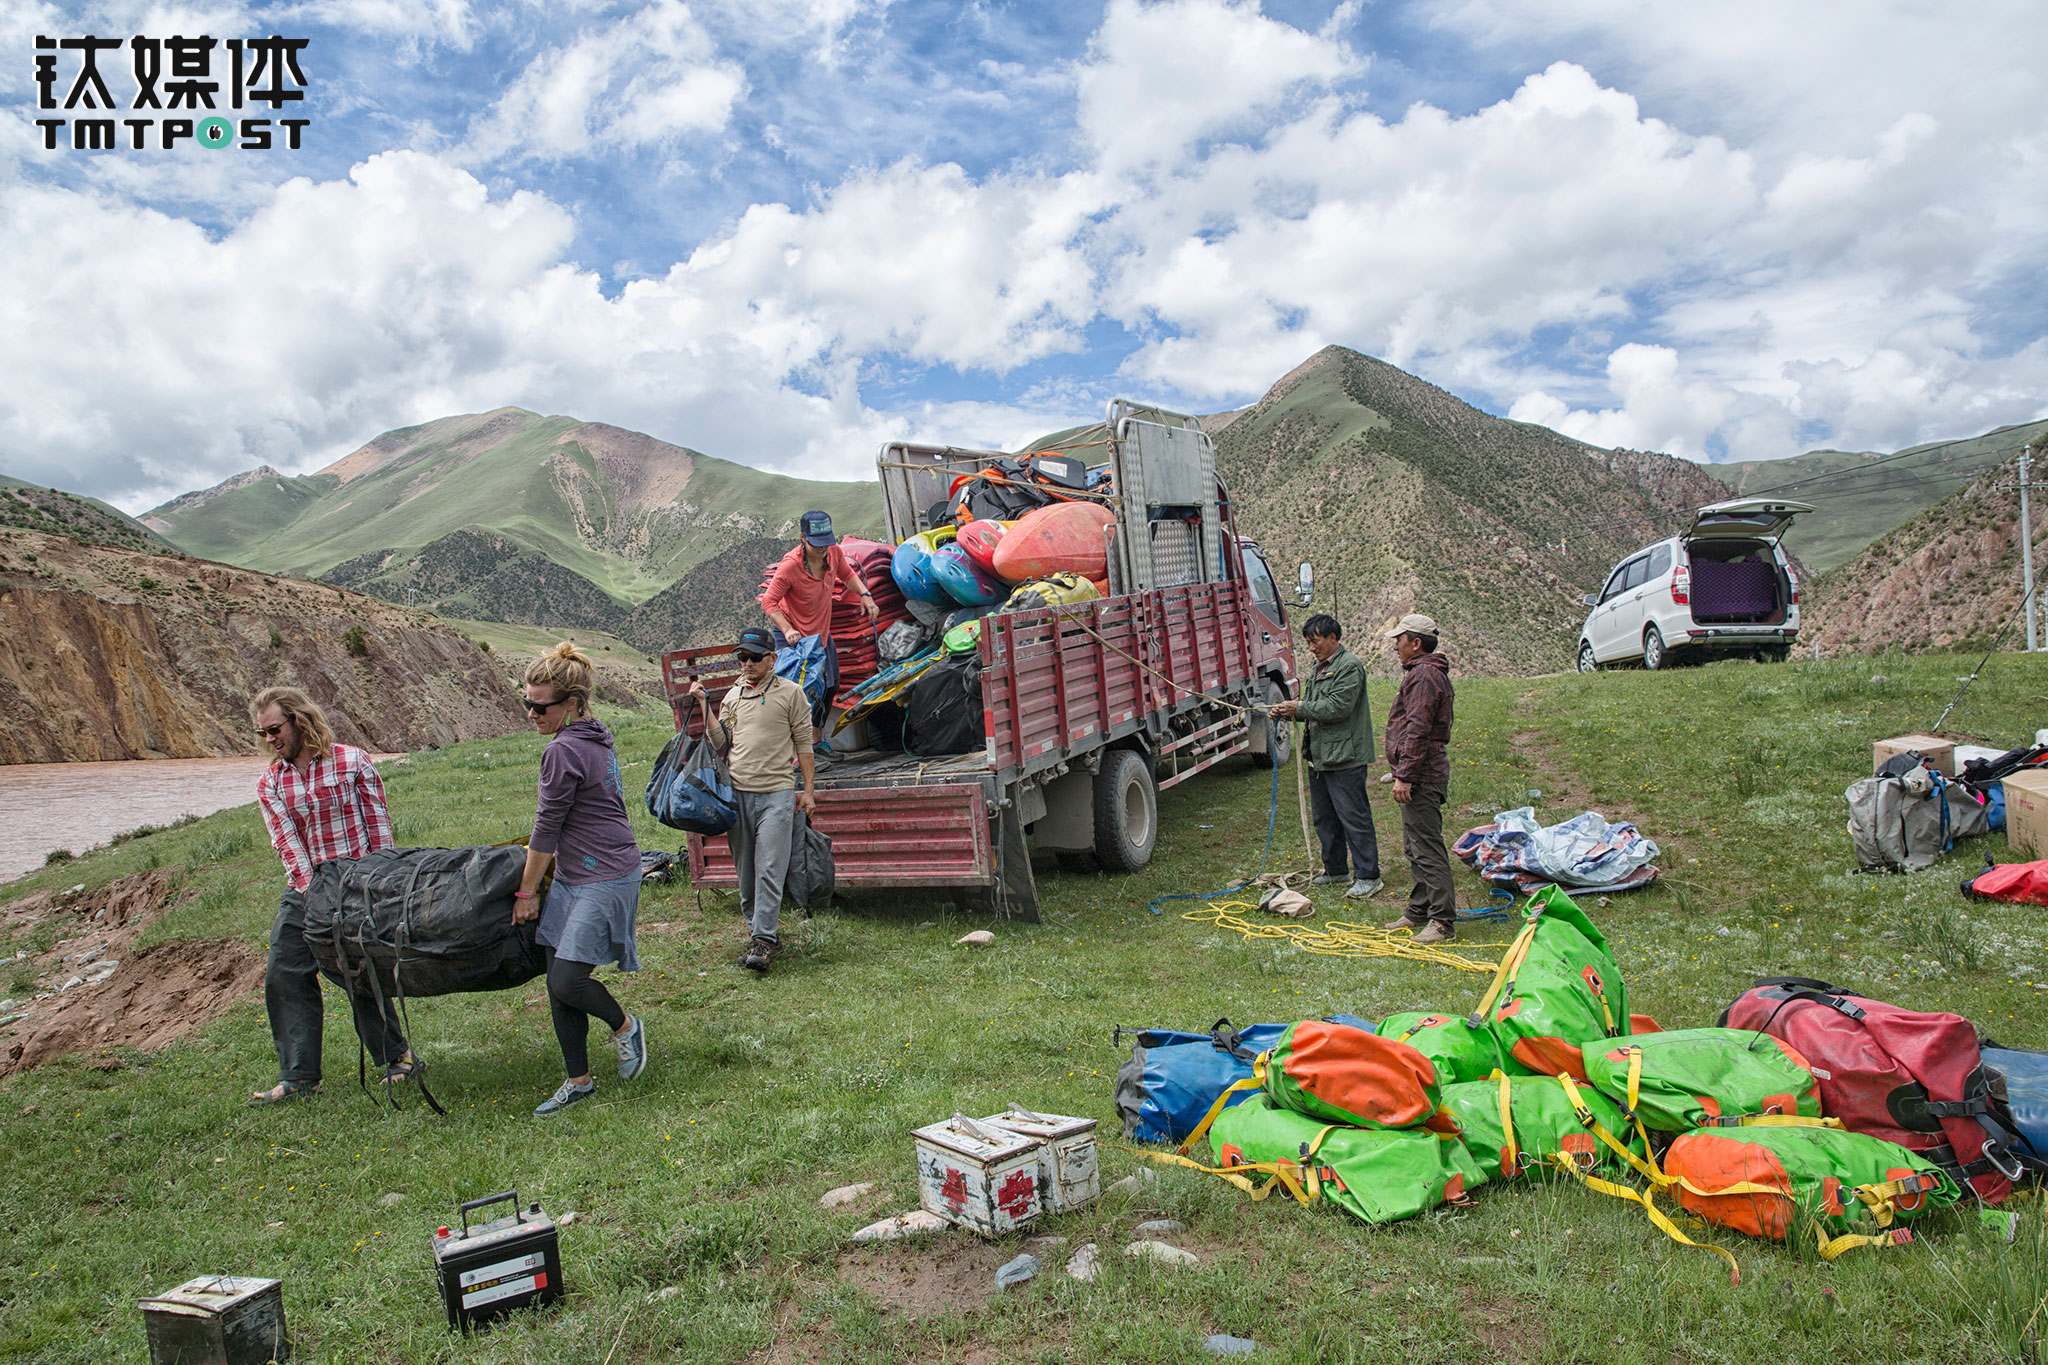 This time the team would be rafting along the Zhaqu river, a journey of 120km, which would last eight days. The day before they hit the road, the captains and local workers were relocating the necessities to the departure point in Yushu's Zaduo county. There were six captains for the entire trip, including Travis Winn himself. Five out of them are American, while only one is Chinese. All of them are seasoned raft captains, with over ten years of experience in rafting in Colorado's Grand Canyon. The rafting industry in China is far from mature, and therefore it's not very easy to find professional equipment that meet the safety standards of a long-distance rafting trip. Winn purchased these equipment from the U.S.